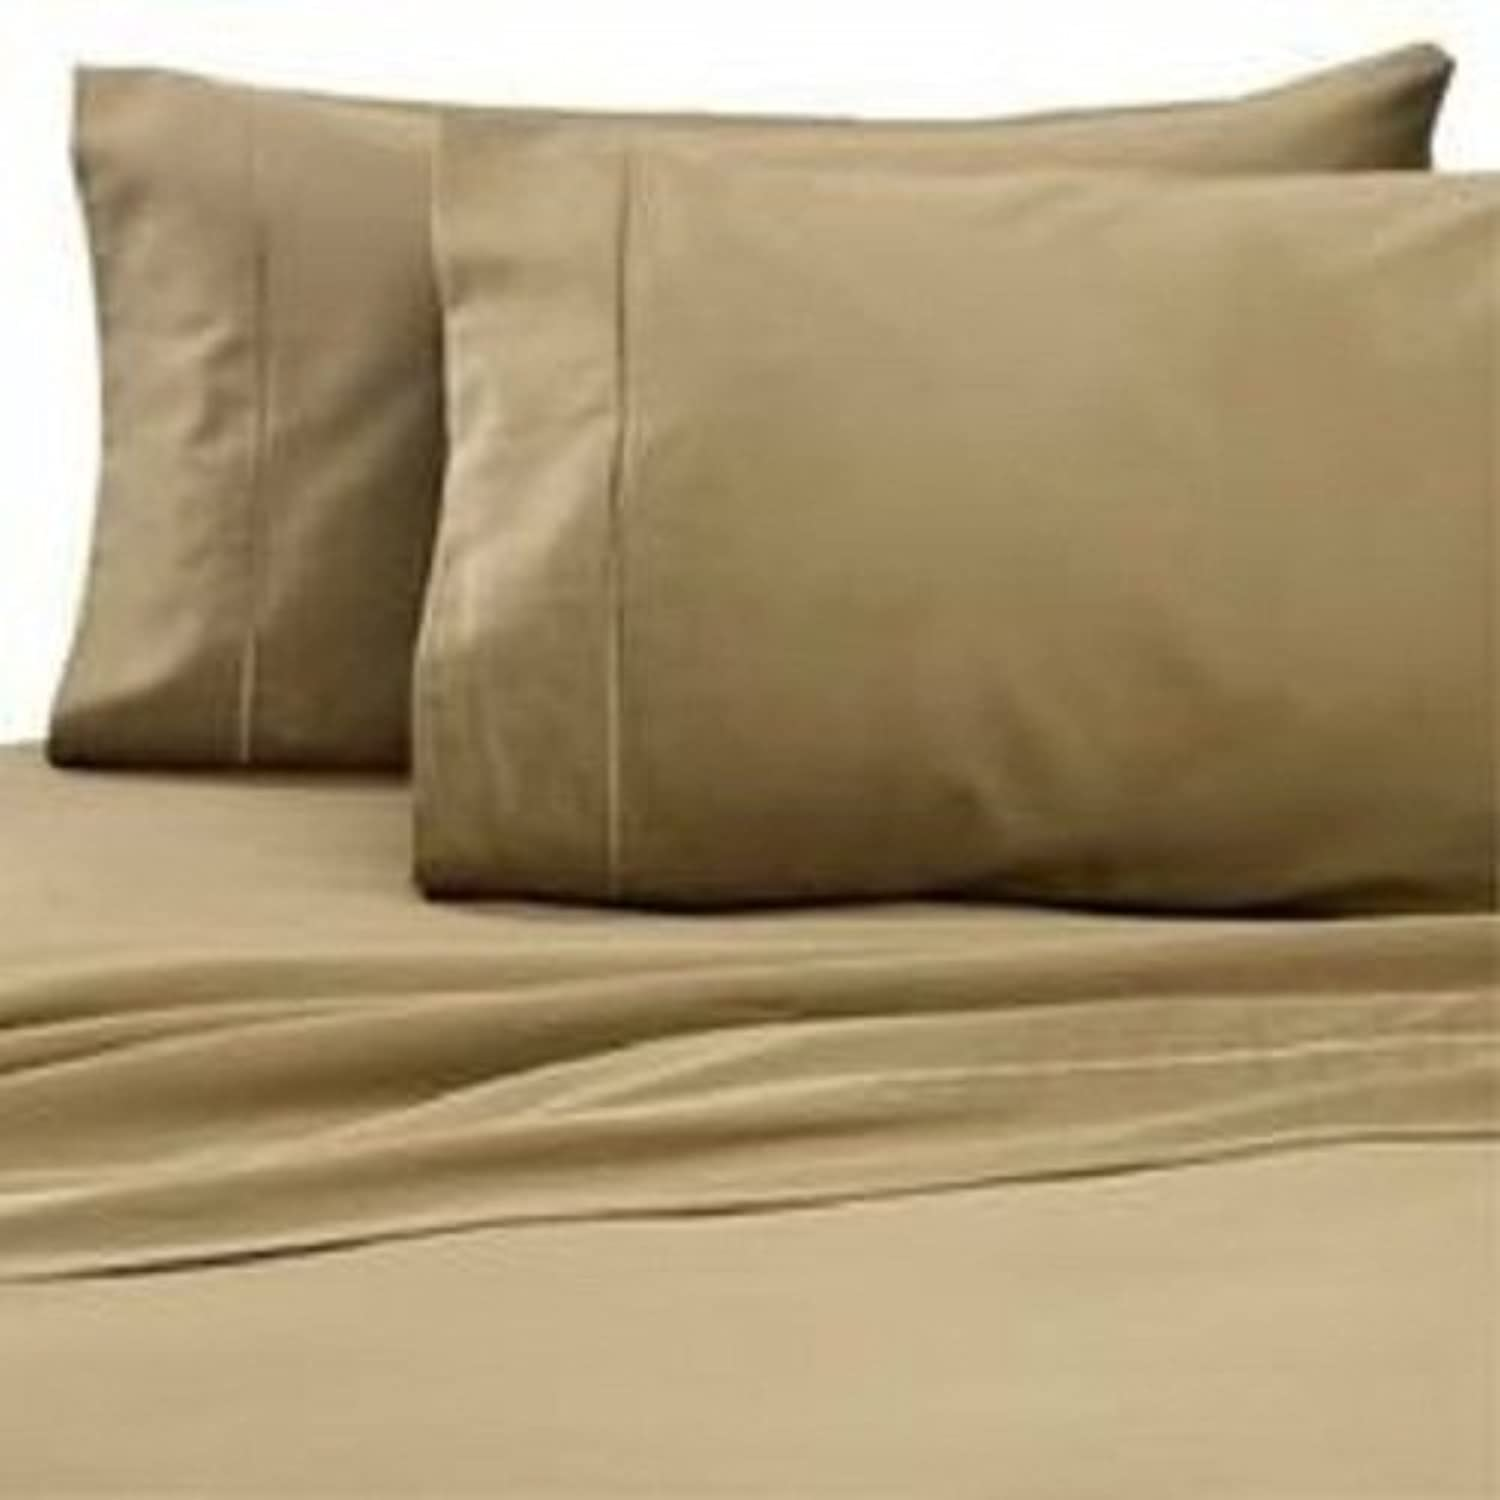 Linen Store Both Pattern Solid Stripe 1-Piece- Fitted- Sheet with 20-25 inches Extra Fit Deep Pocket Hotel Finish Adjustable Room 400 Thread Count 100% Pima Cotton (King, Solid, Taupe).